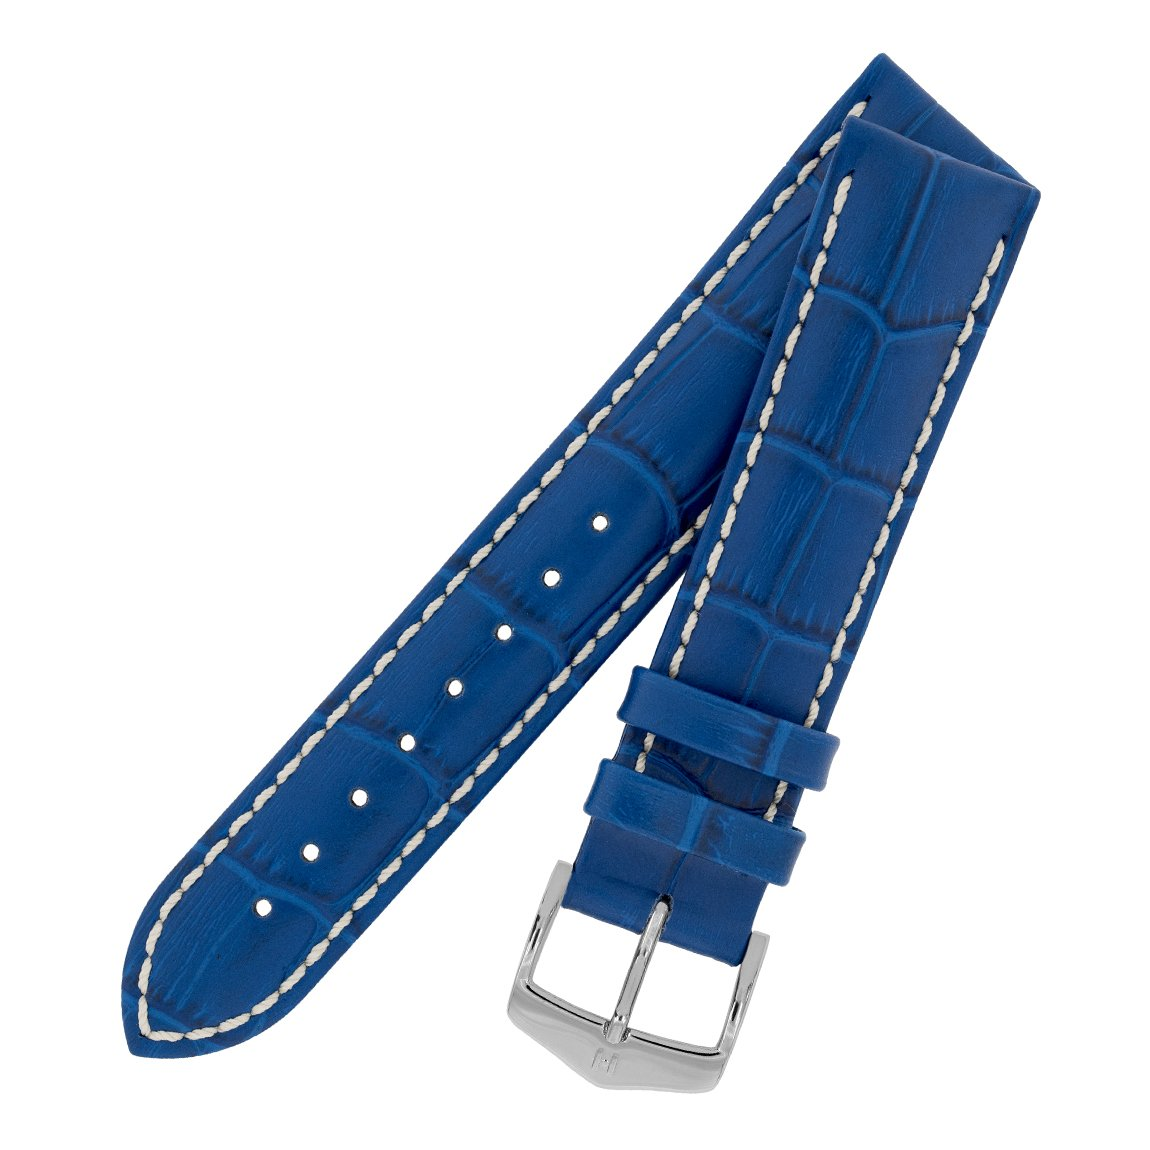 d96f0aa6f Hirsch Modena Alligator Embossed Leather Watch Strap with Buckle in Royal  Blue (18mm, Silver Buckle): Amazon.co.uk: Watches